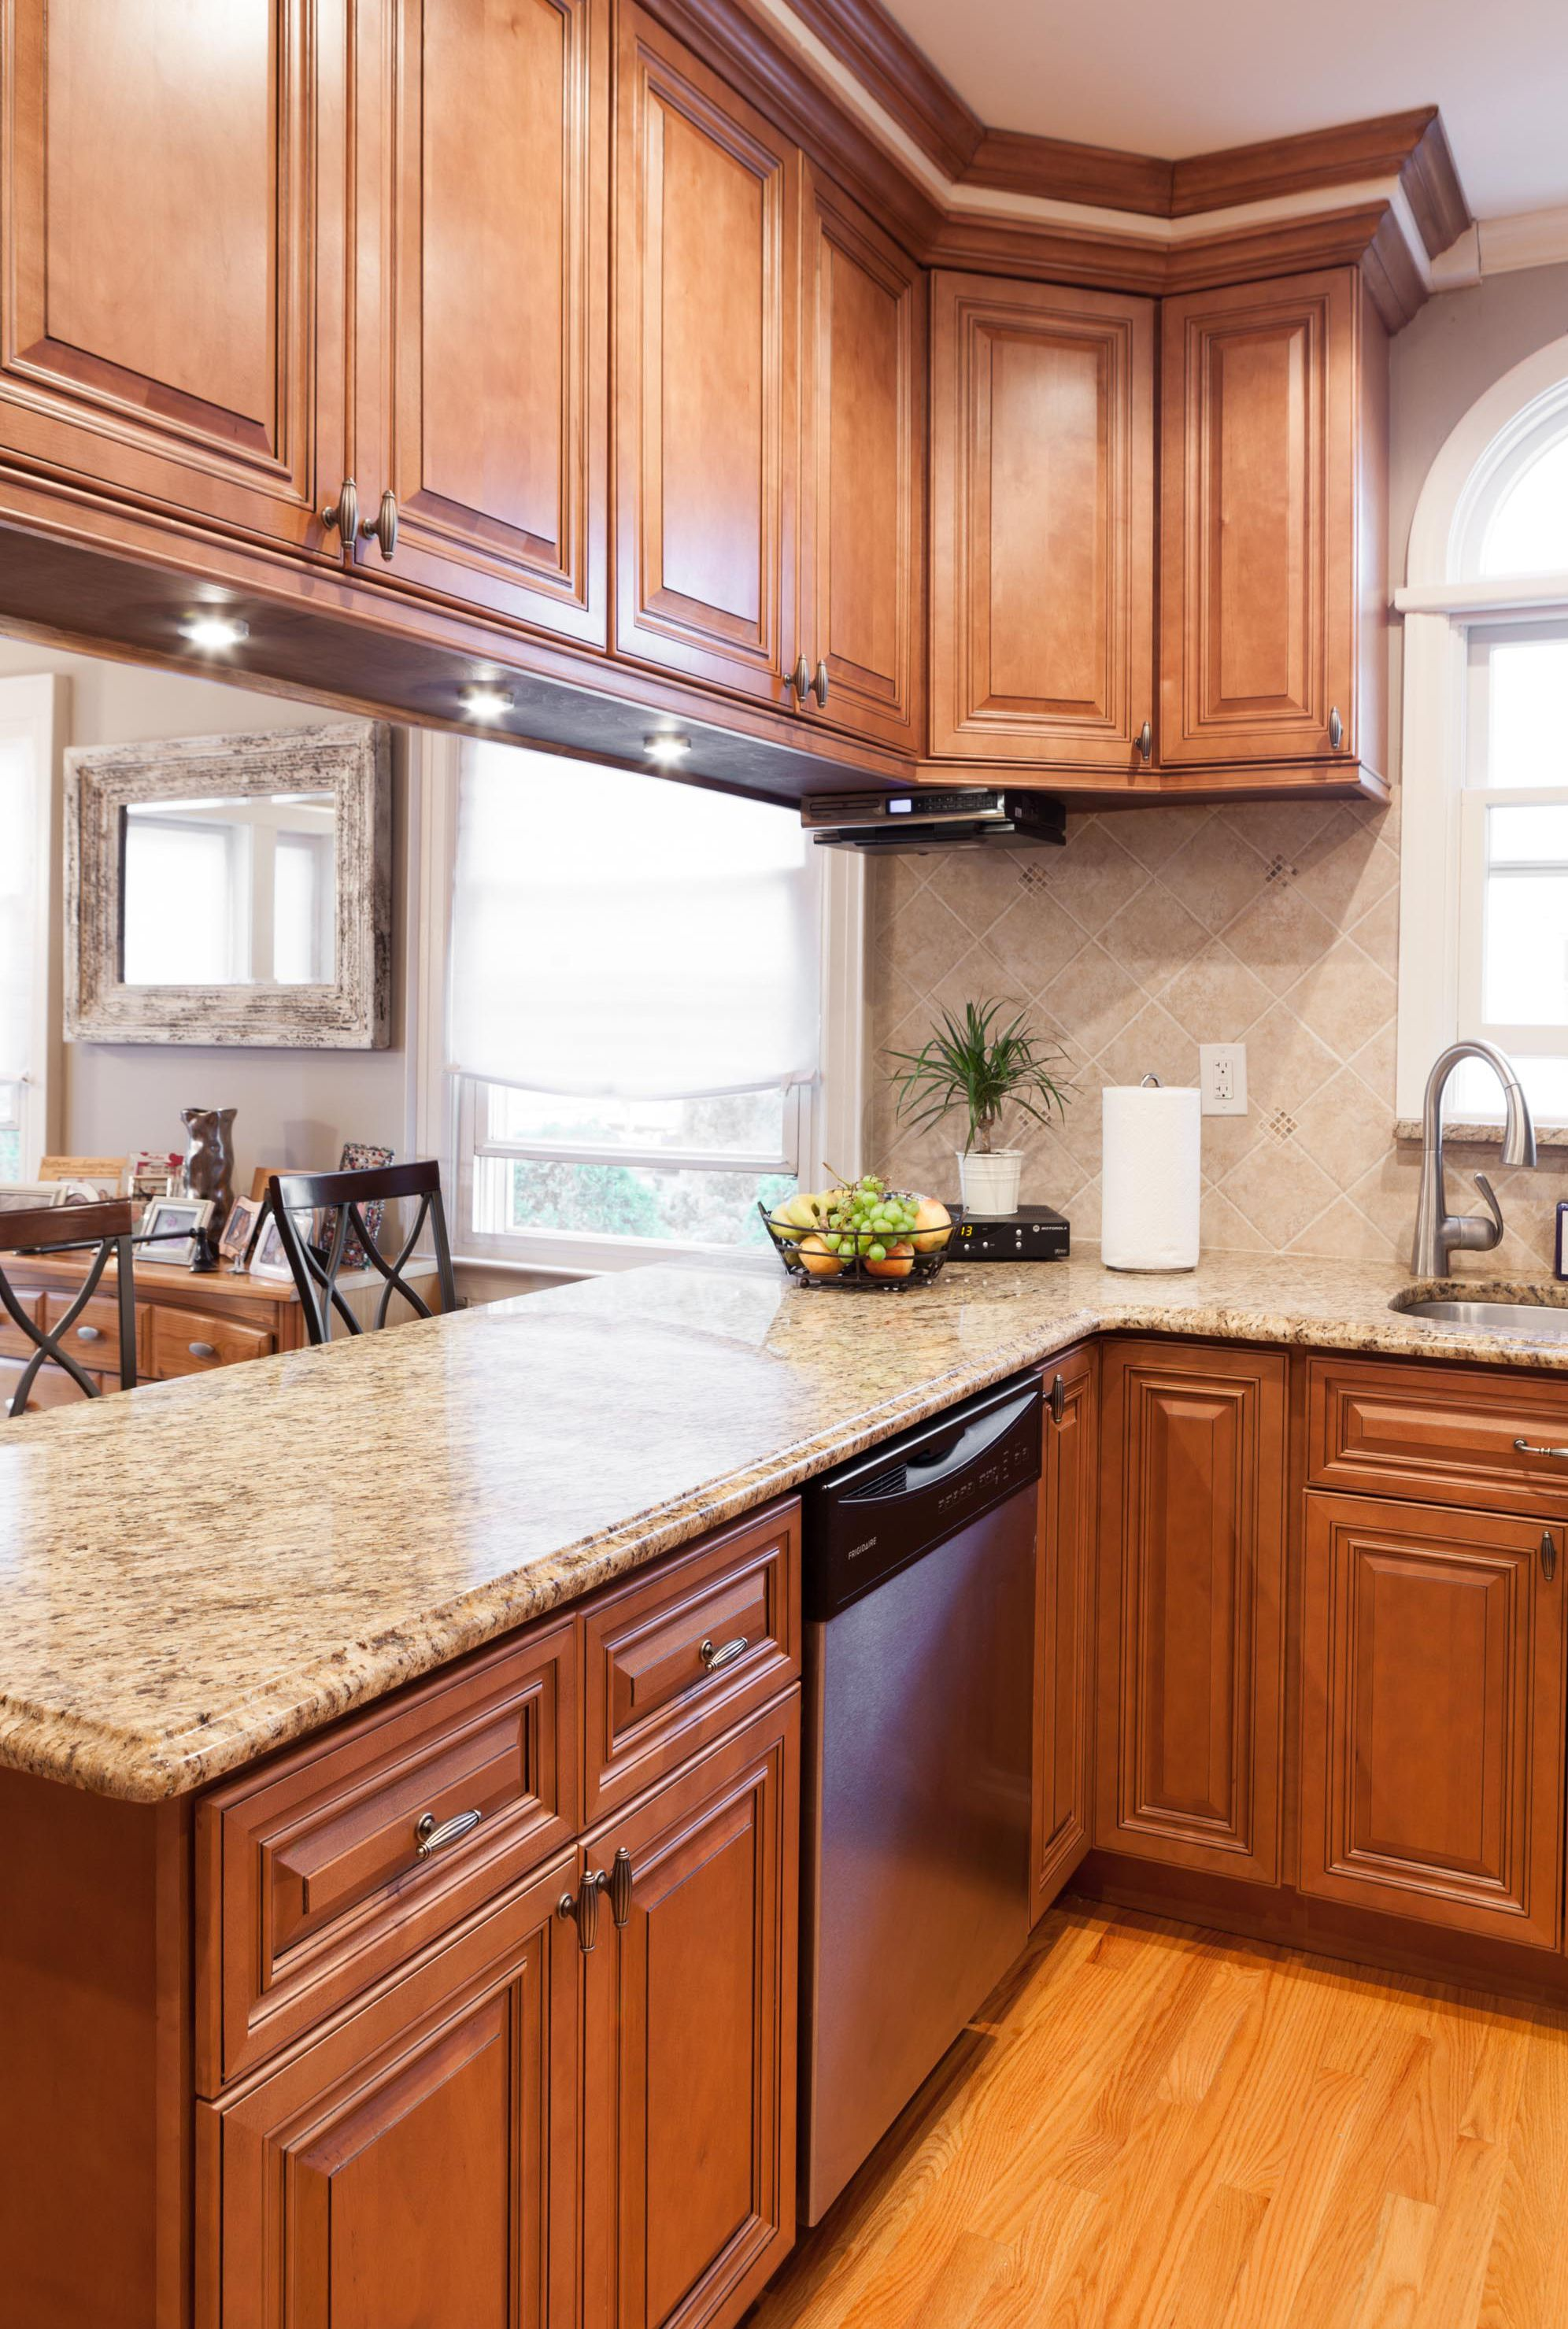 maple countertops kitchen rolling islands j andk traditional wood cabinets in cinnamon glaze